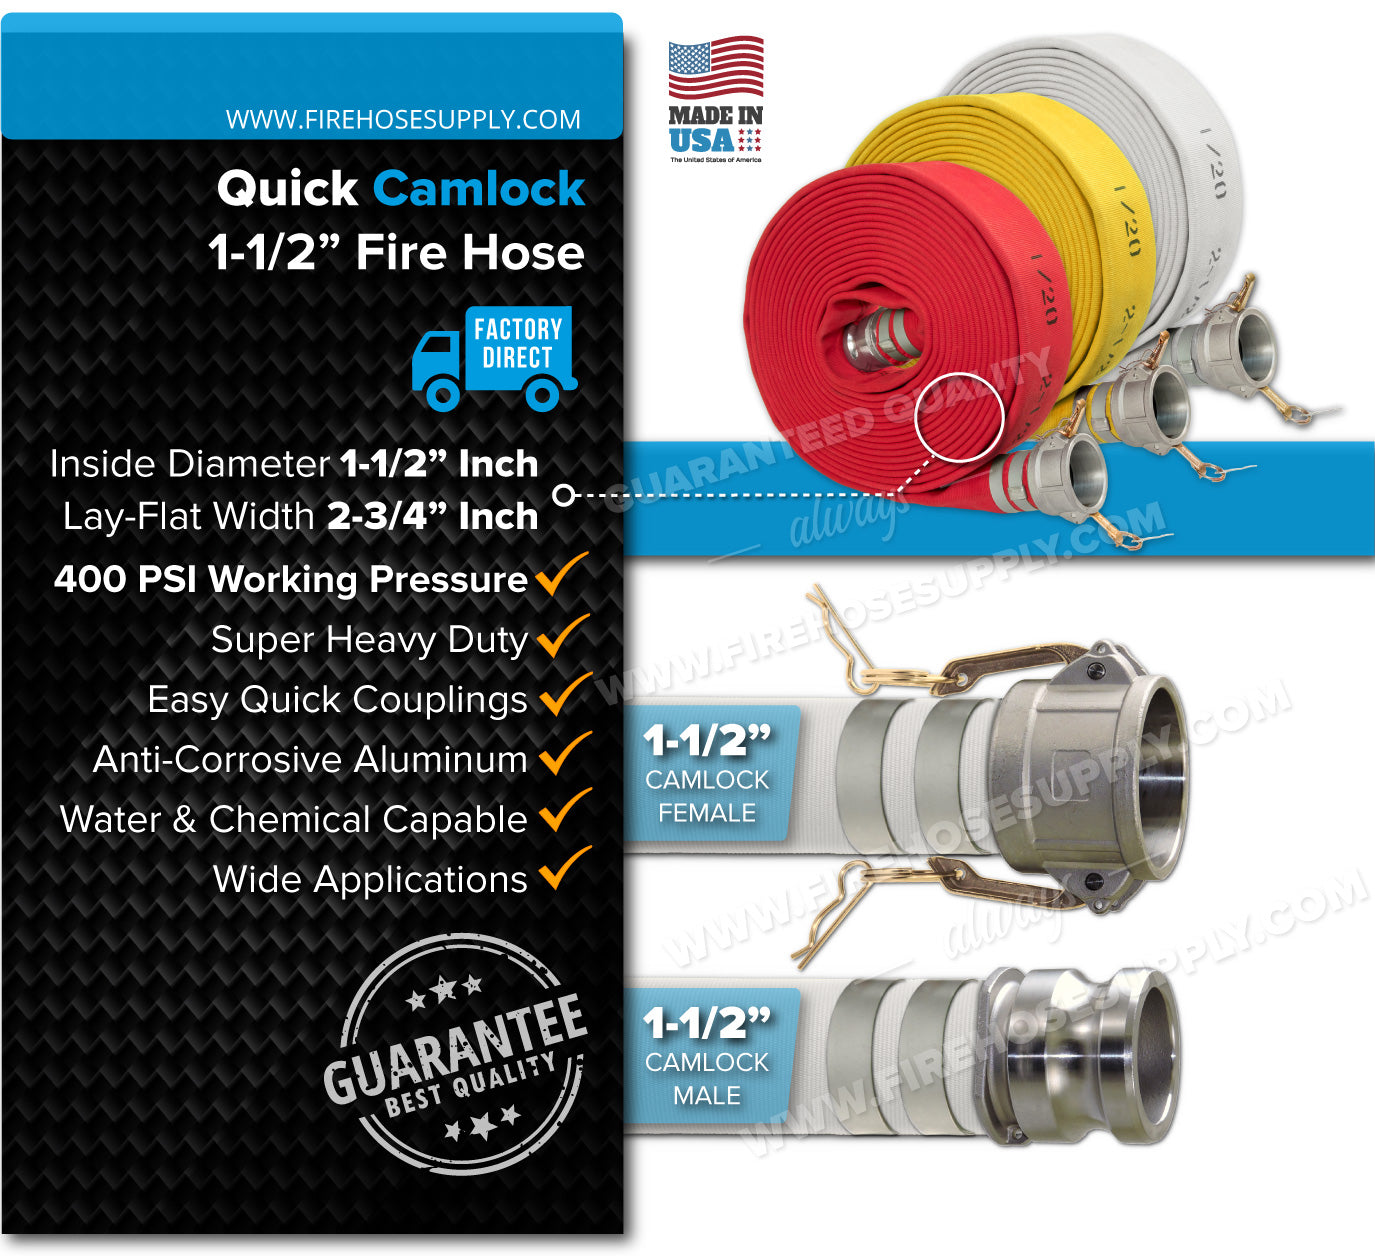 1-1-2 Inch Double Jacket Camlock Fire Hose Overview